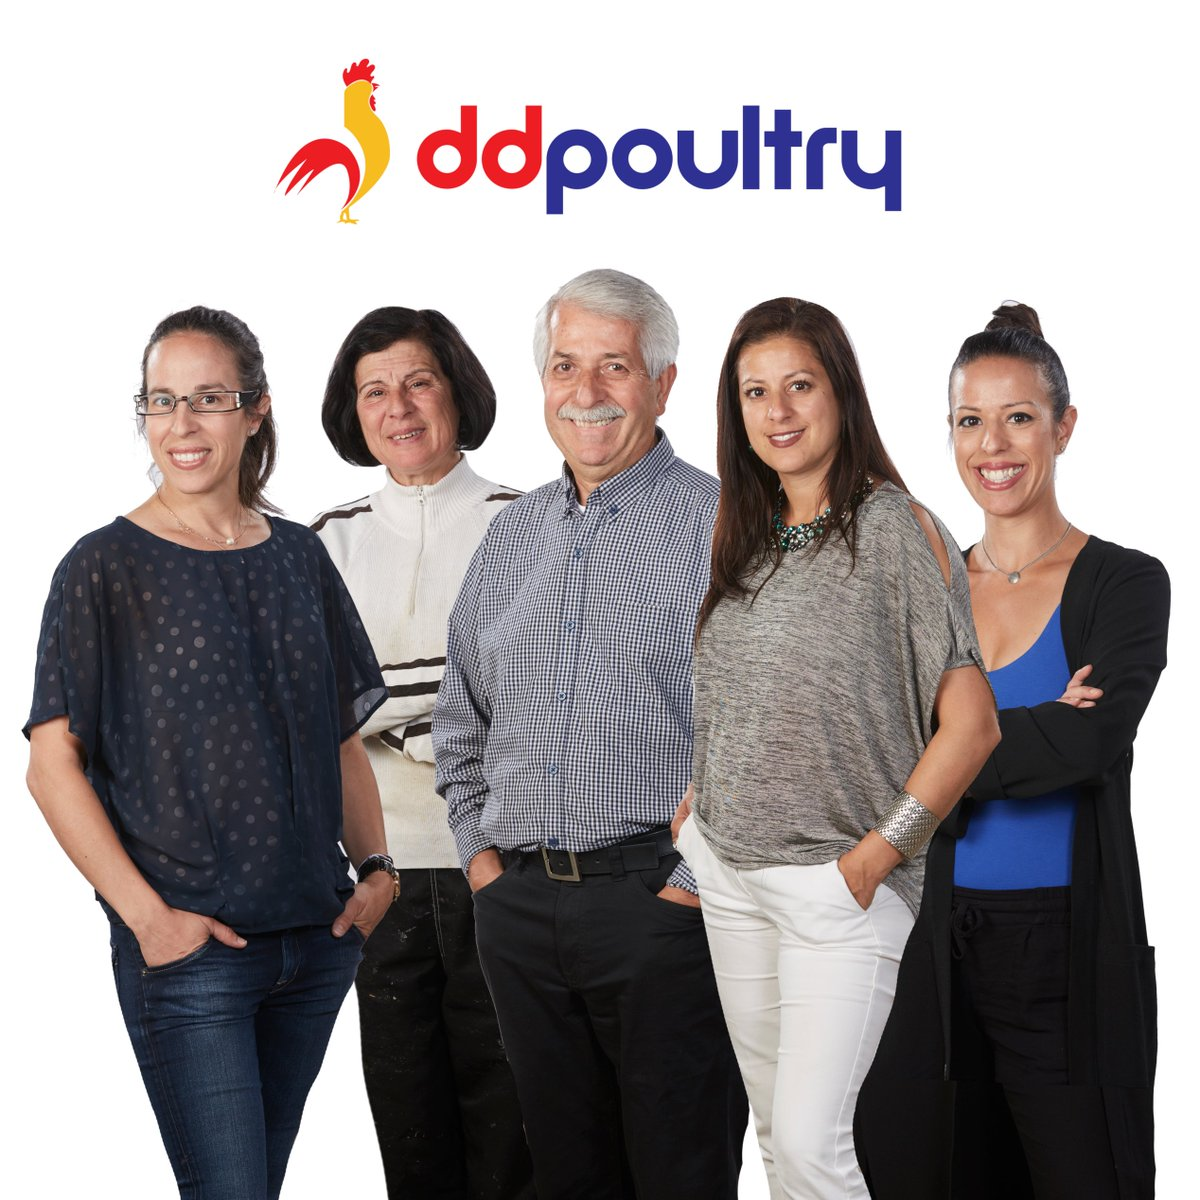 DDPoultry photo